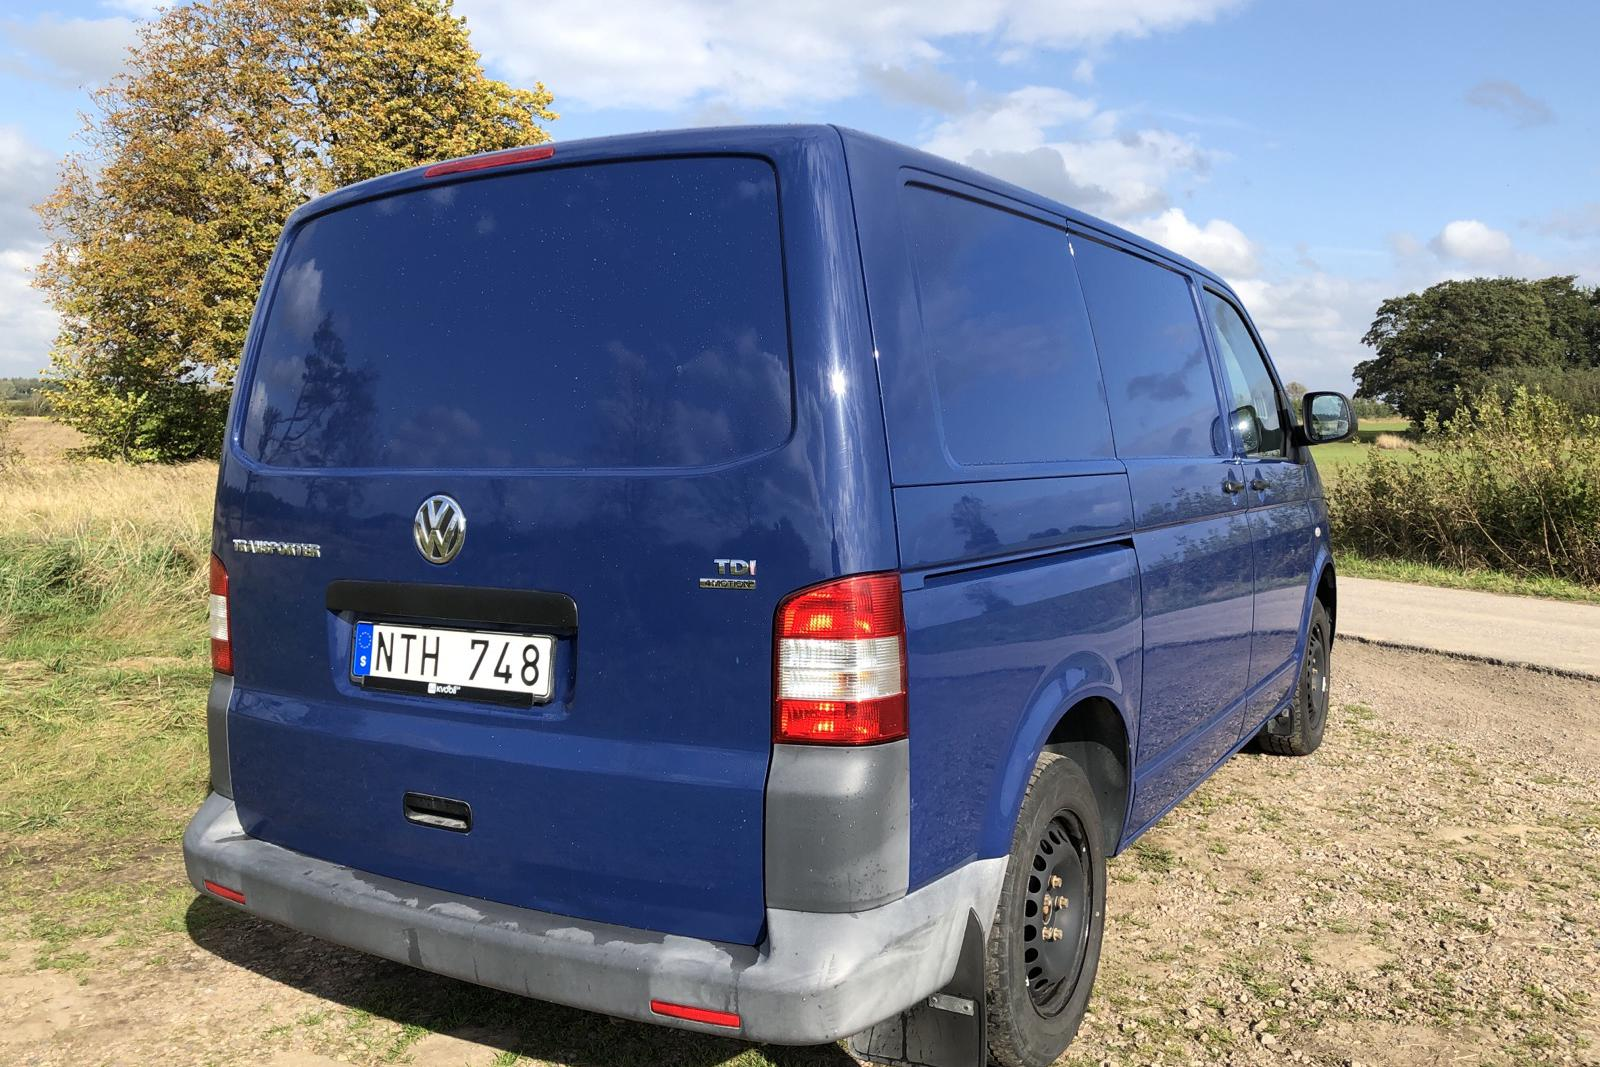 VW Transporter T5 2.0 TDI 4MOTION (140hk) - 0 km - Manual - Dark Blue - 2011